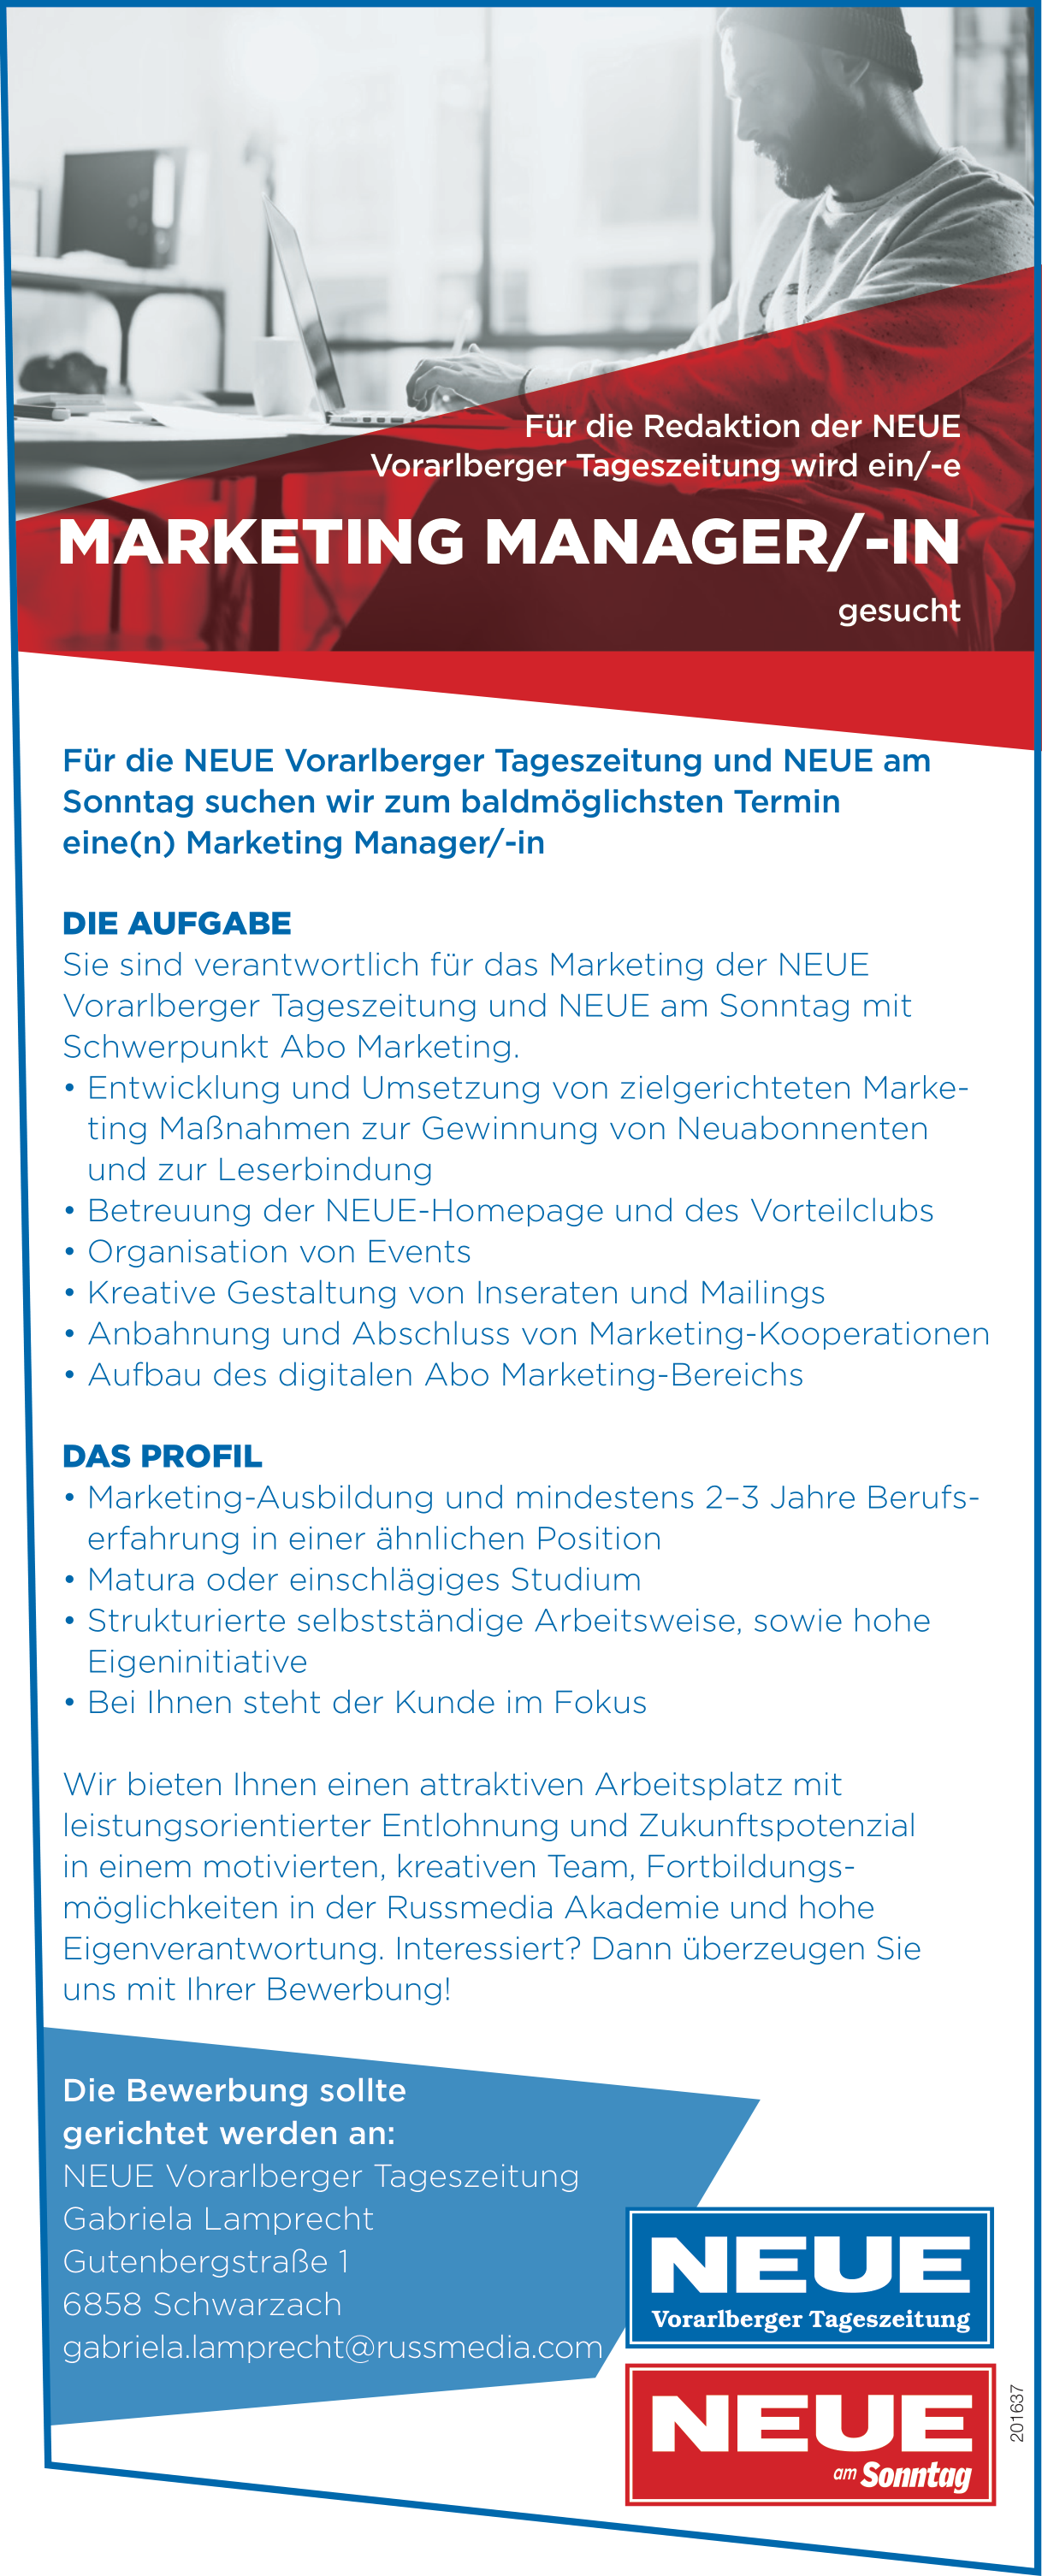 MARKETING MANAGER/-IN